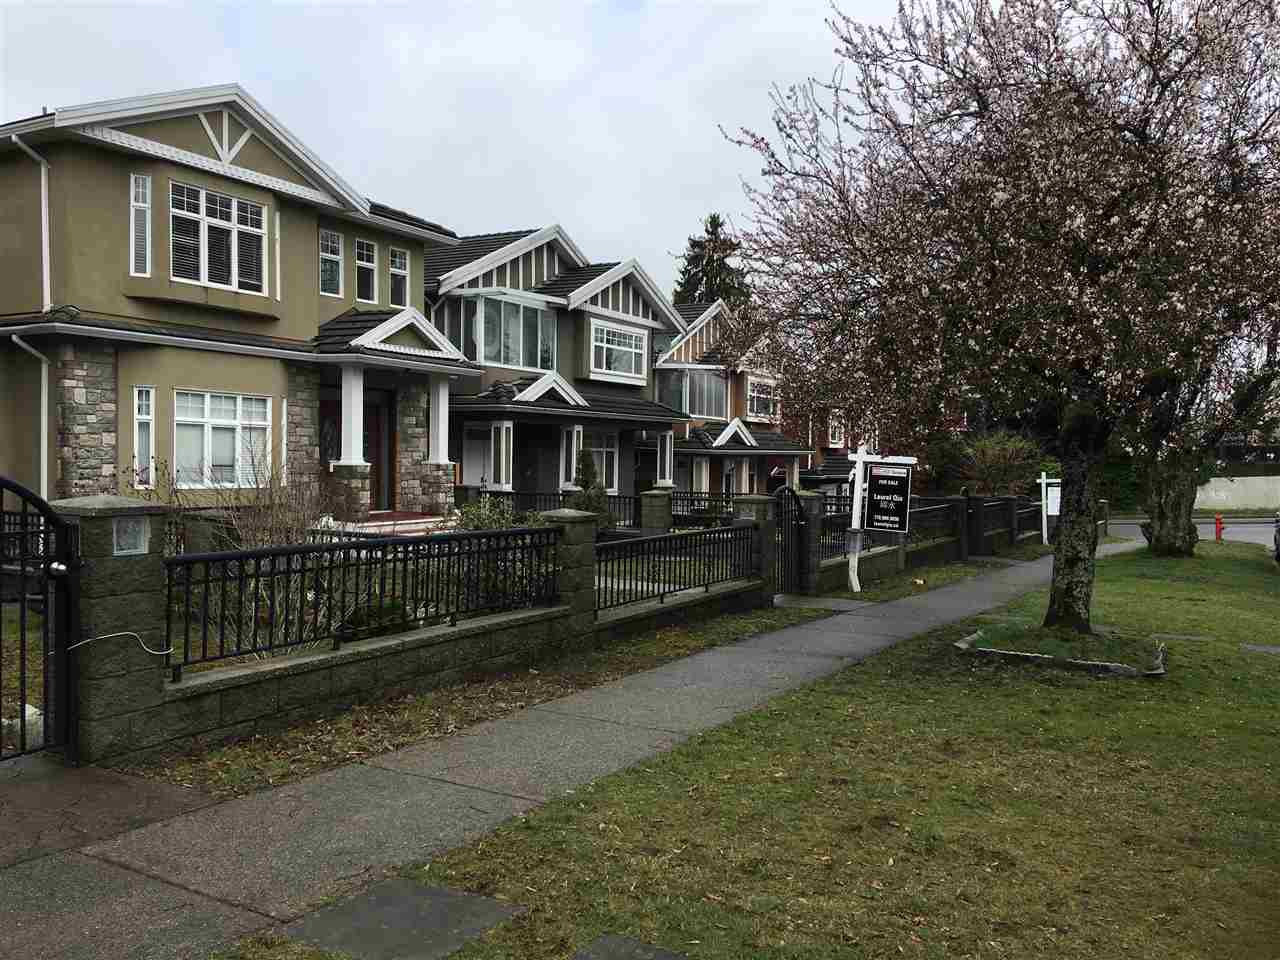 Main Photo: 5749 CREE STREET in Vancouver: Main House for sale (Vancouver East)  : MLS®# R2241377